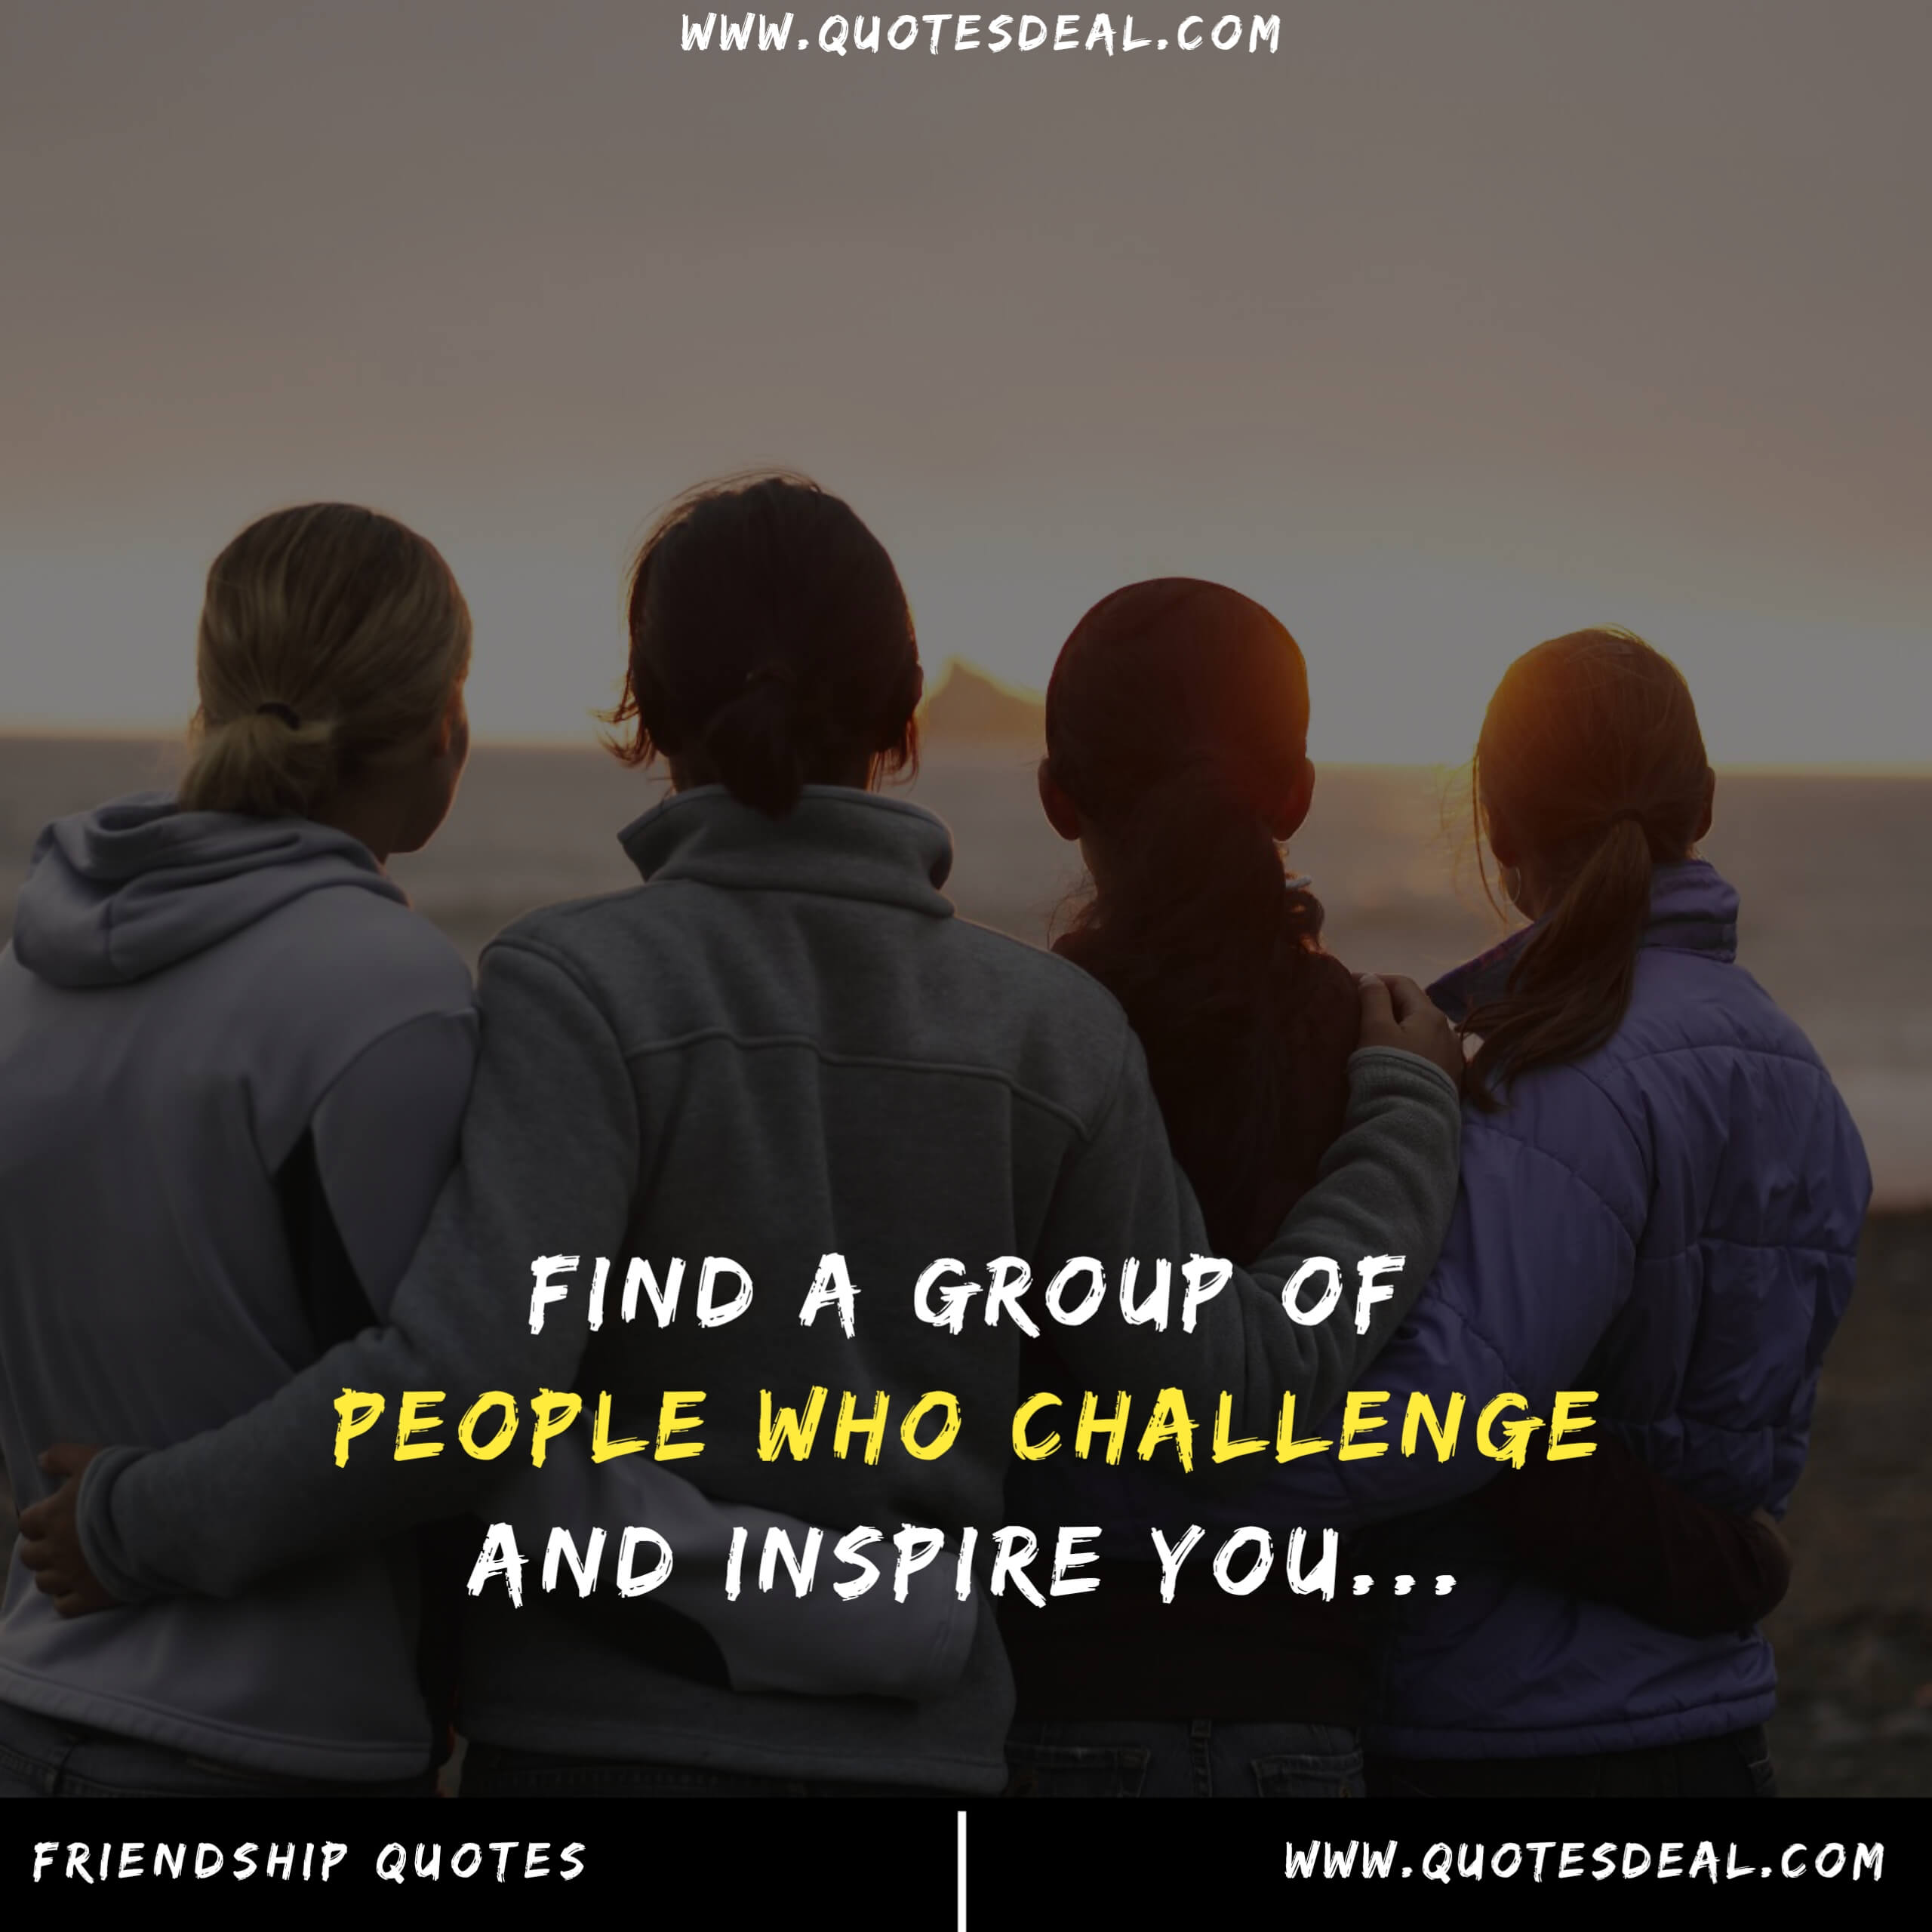 Find a group of people